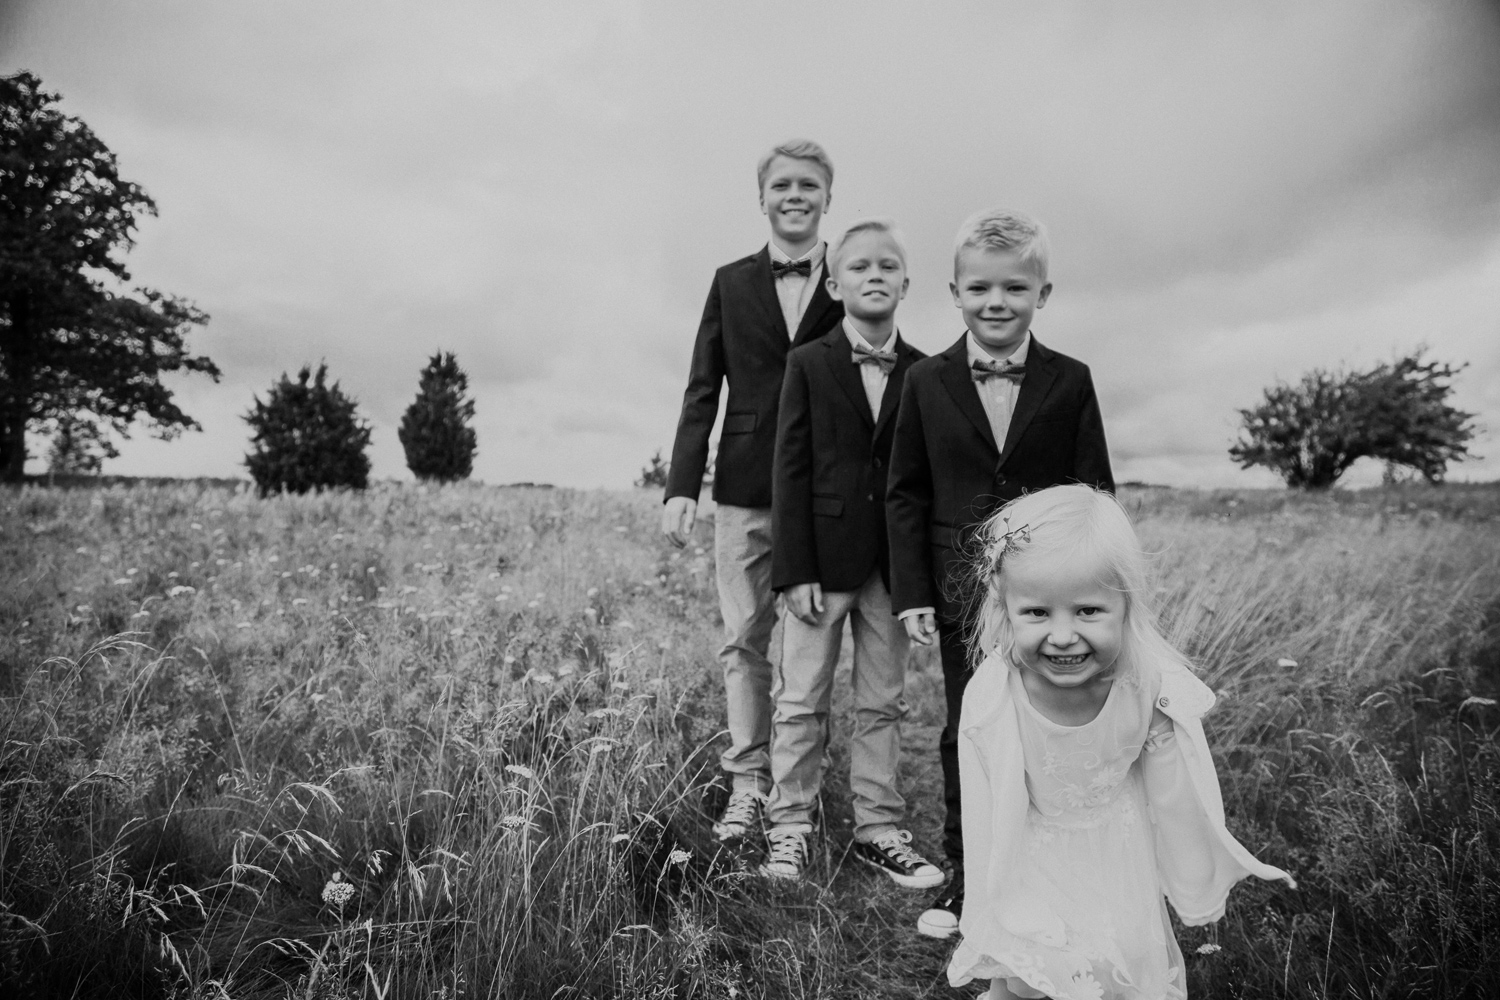 Wedding photographer Sweden portraits wedding photos